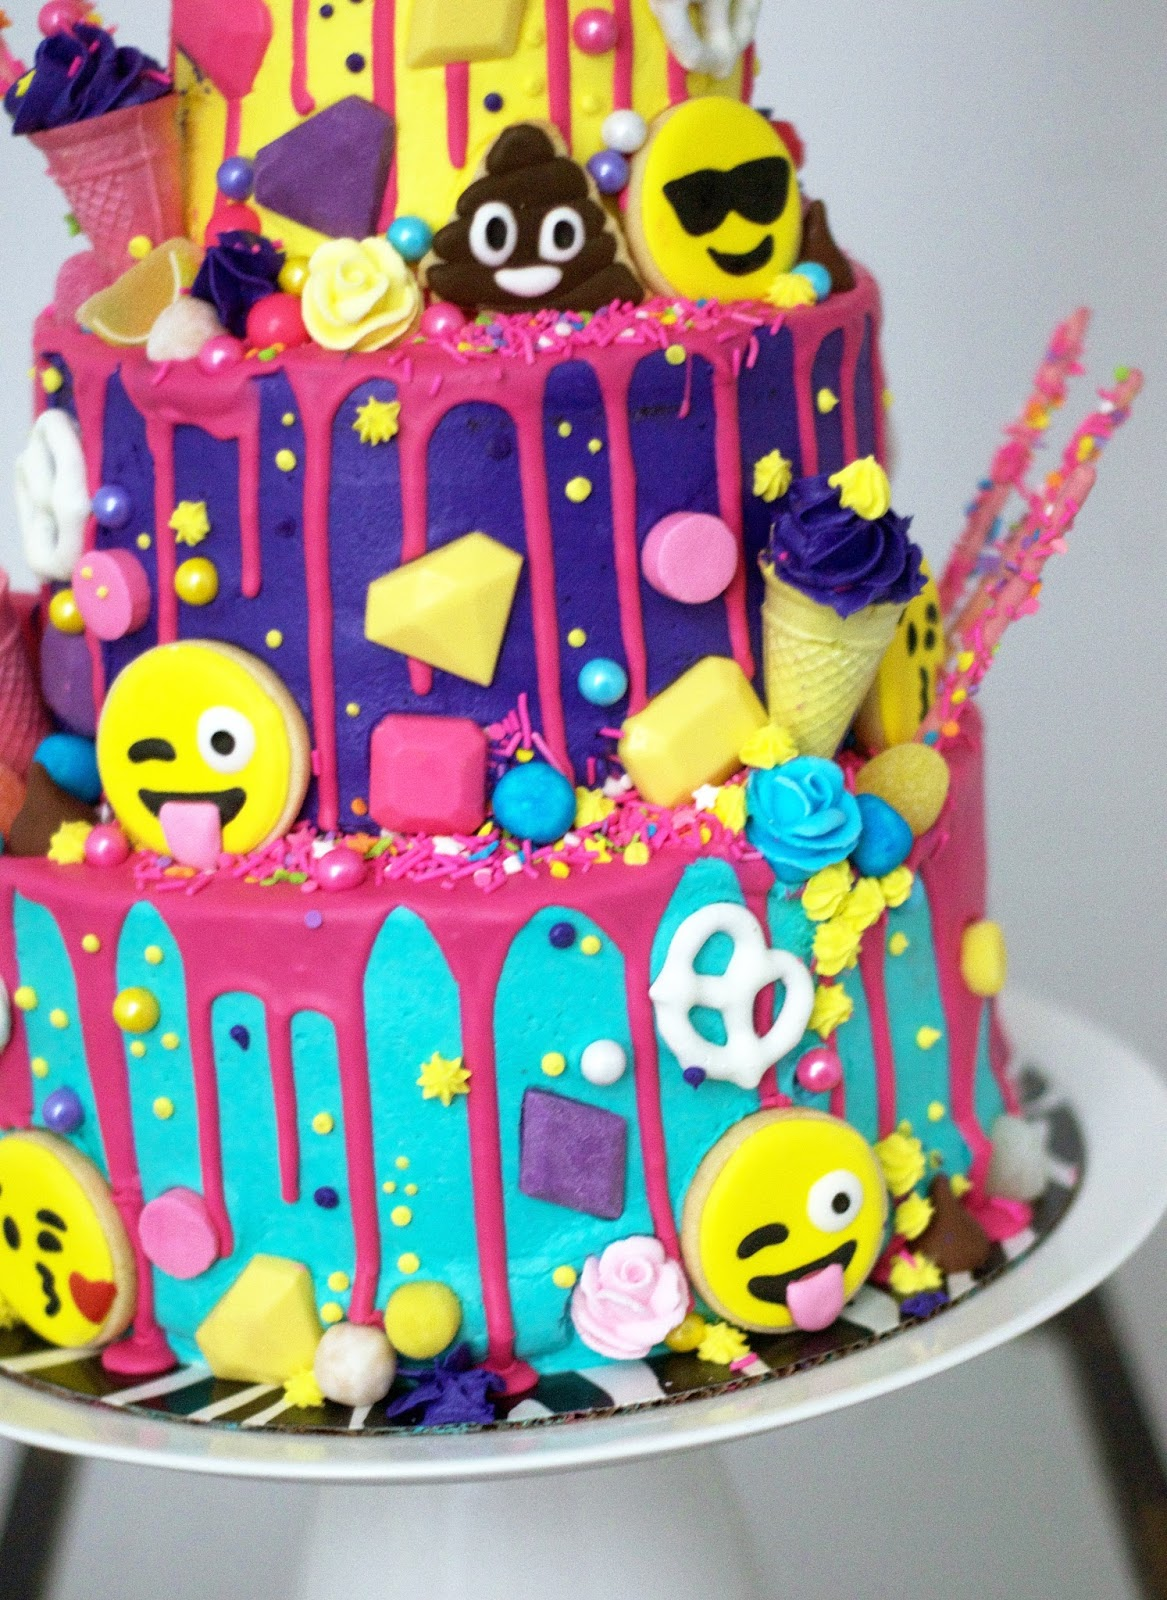 Cake Emoji Art : Emoji Cake - THE PARTY PARADE